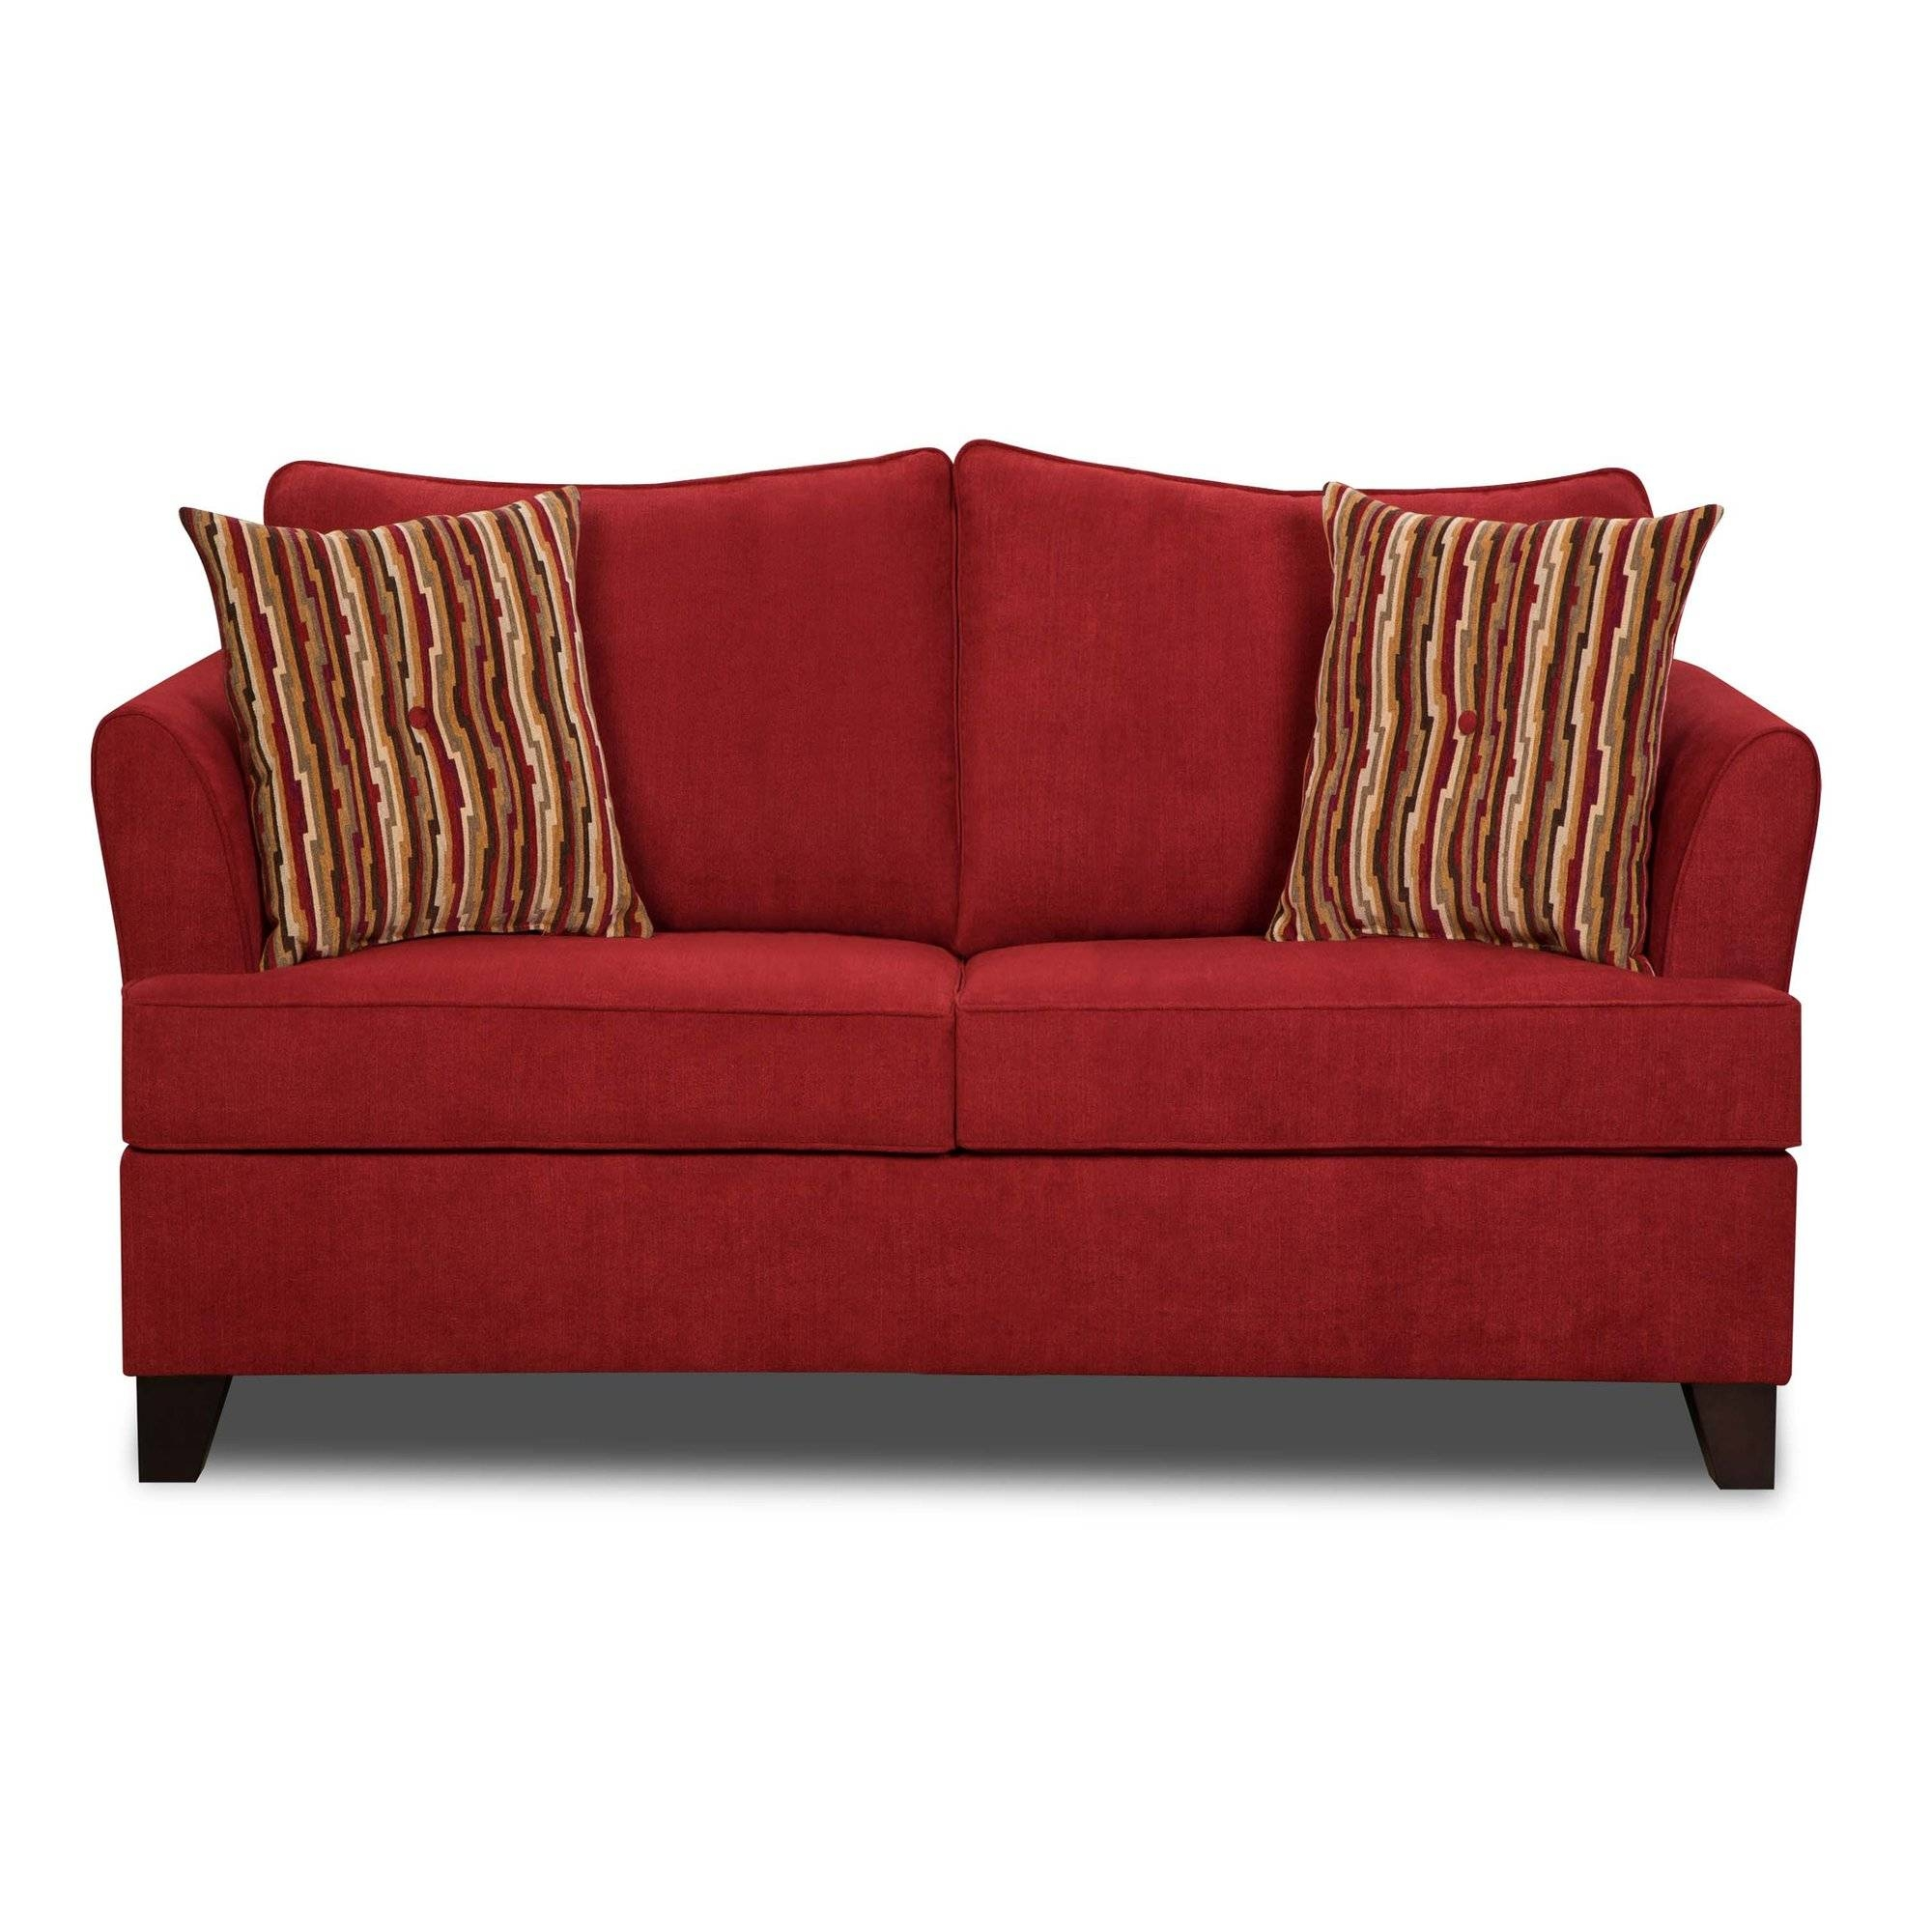 Furniture: Using Comfy Simmons Sleeper Sofa For Home Furniture intended for Loveseat Twin Sleeper Sofas (Image 13 of 30)